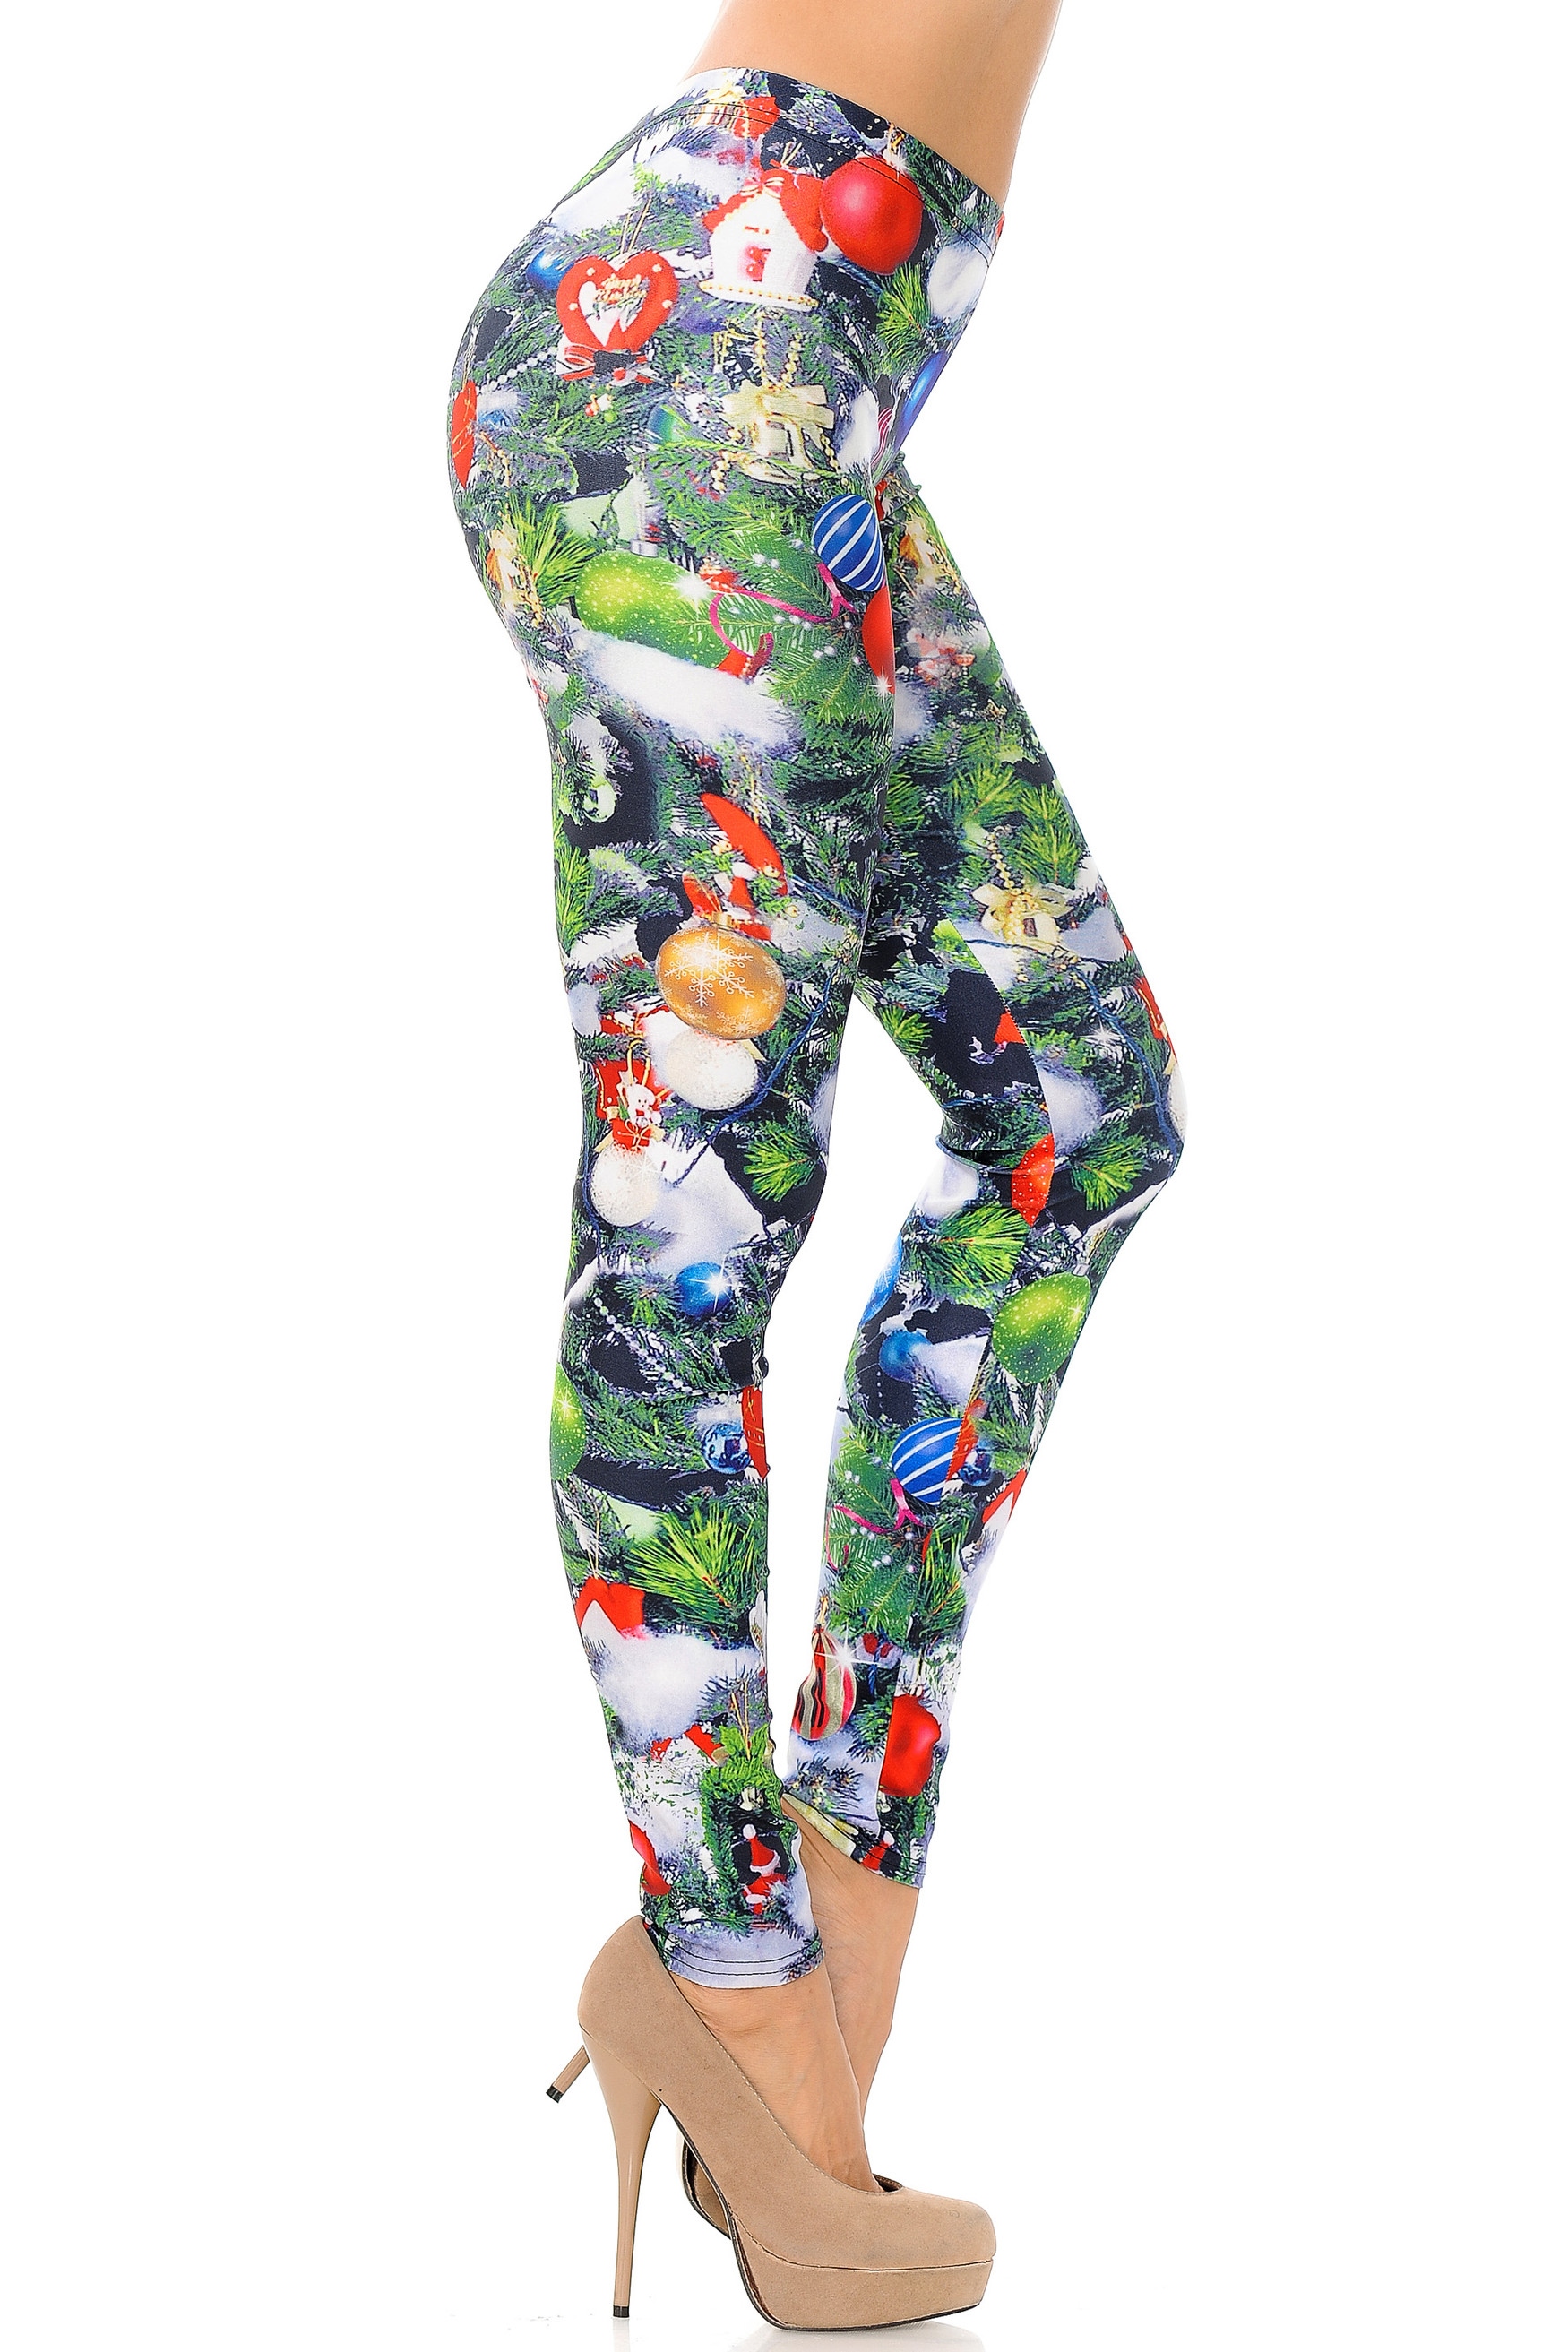 Trimmed Up Christmas Tree Leggings - Plus Size